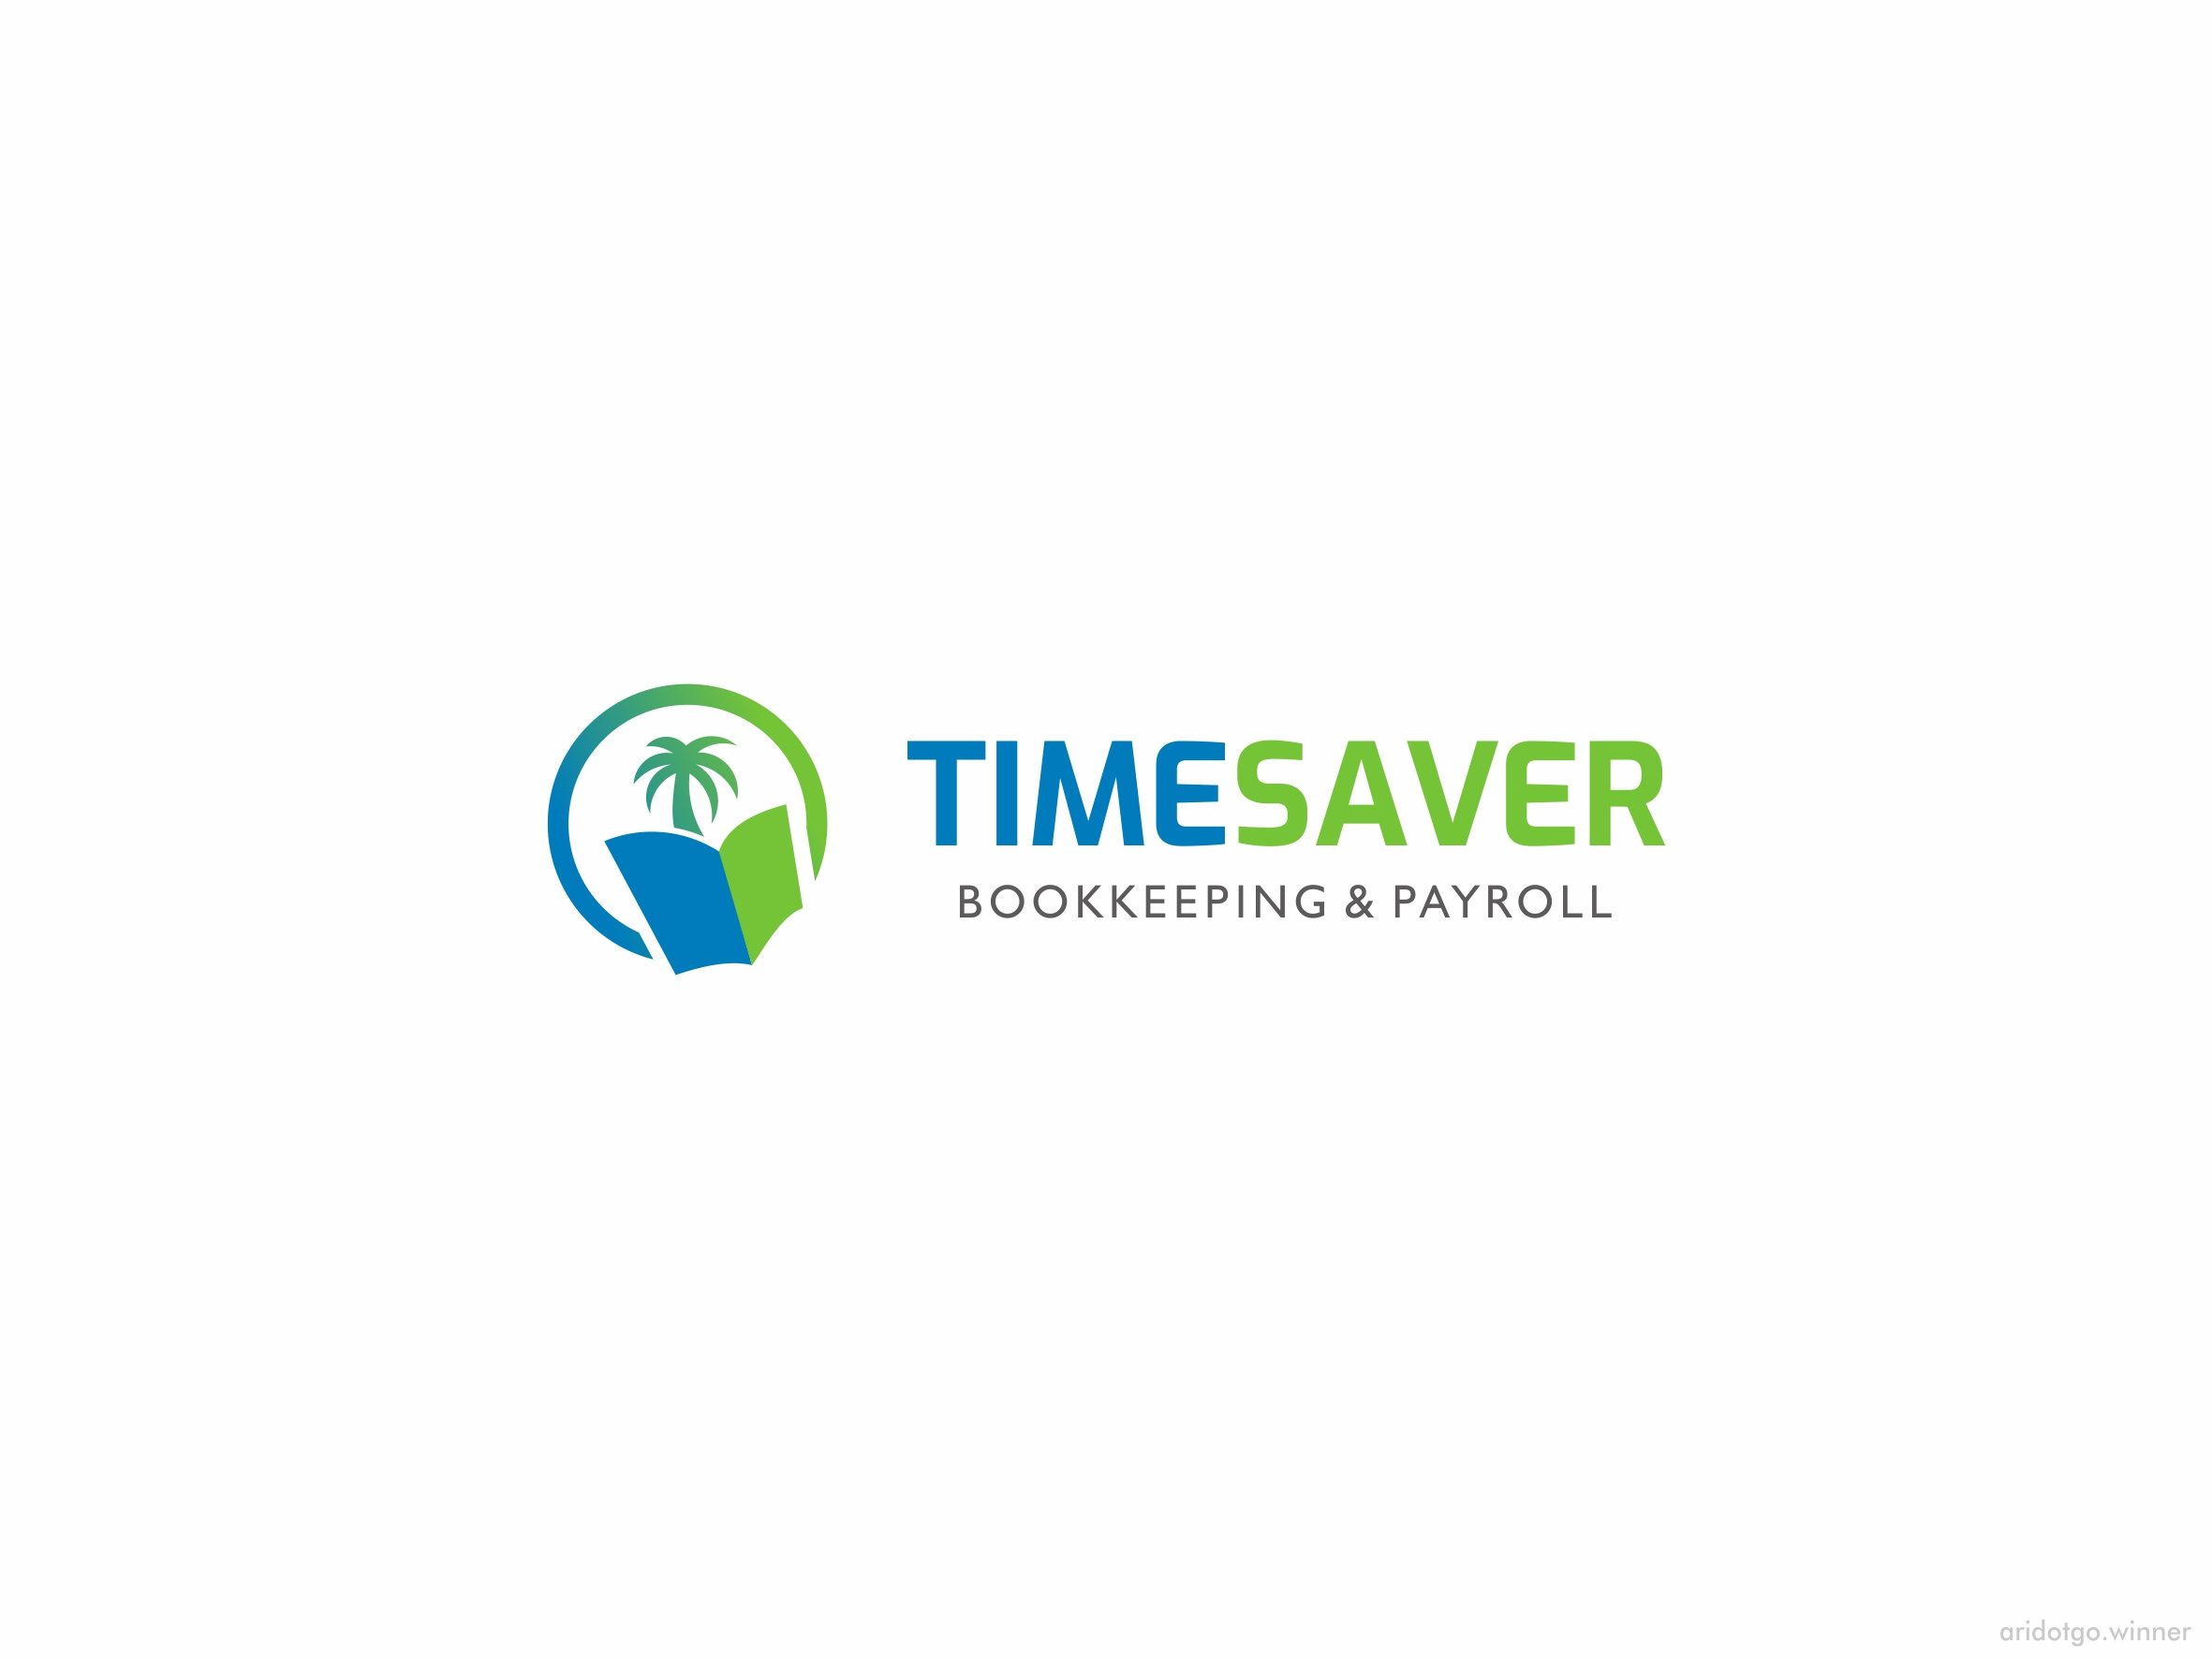 Playful, Personable Logo Design for Timesaver Bookkeeping & Payroll by  Khoirudin As'ari | Design #24819959